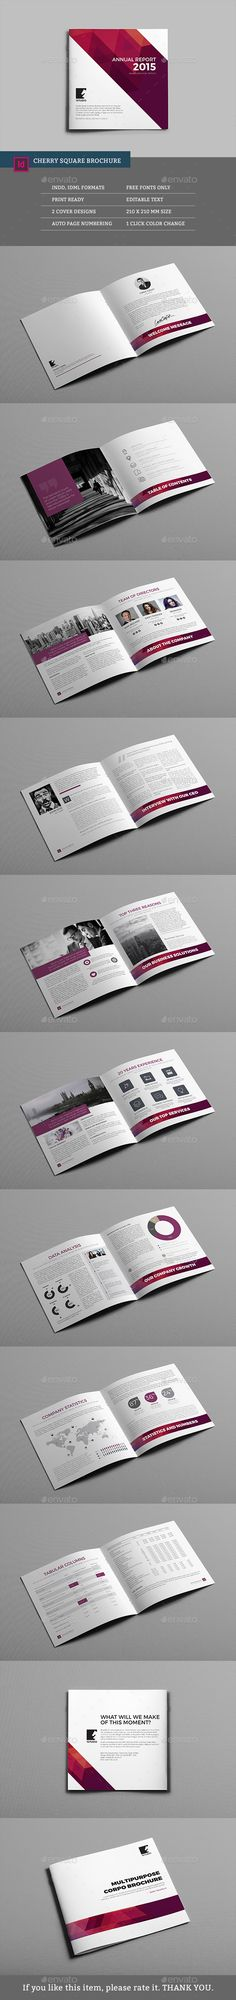 Buy Cherry Square Multipurpose Brochure by graphix_shiv on GraphicRiver. Cherry Square Multipurpose Brochure – Features Cherry Square Multipurpose Brochure Template that is super simple to e. Bi Fold Brochure, Brochure Layout, Brochure Template, Corporate Brochure, Business Brochure, Page Layout Design, Book Layout, Graphic Design Brochure, Booklet Design